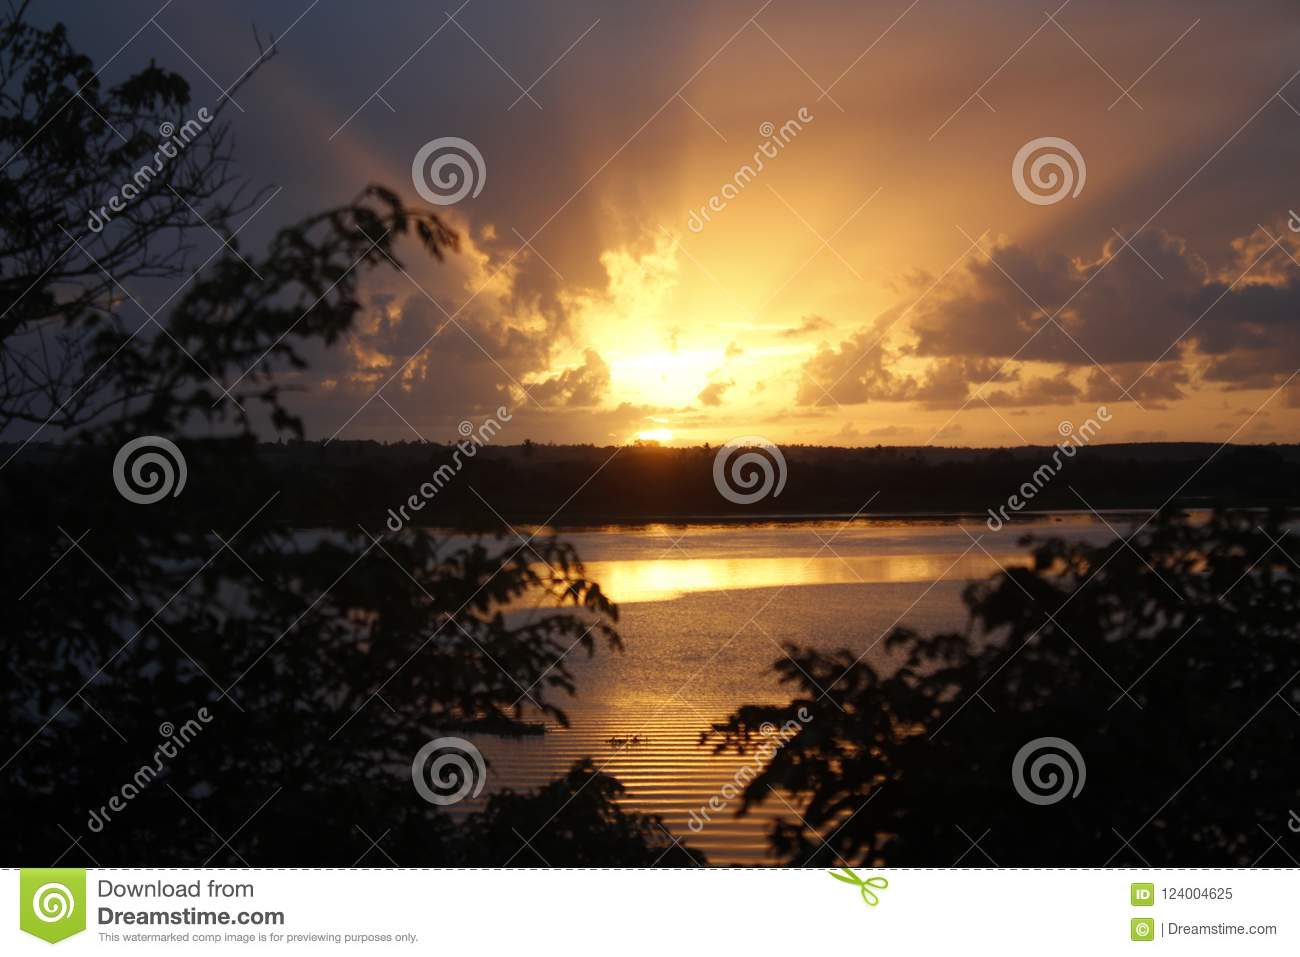 Sunrise in the Sao Francisco River with trees